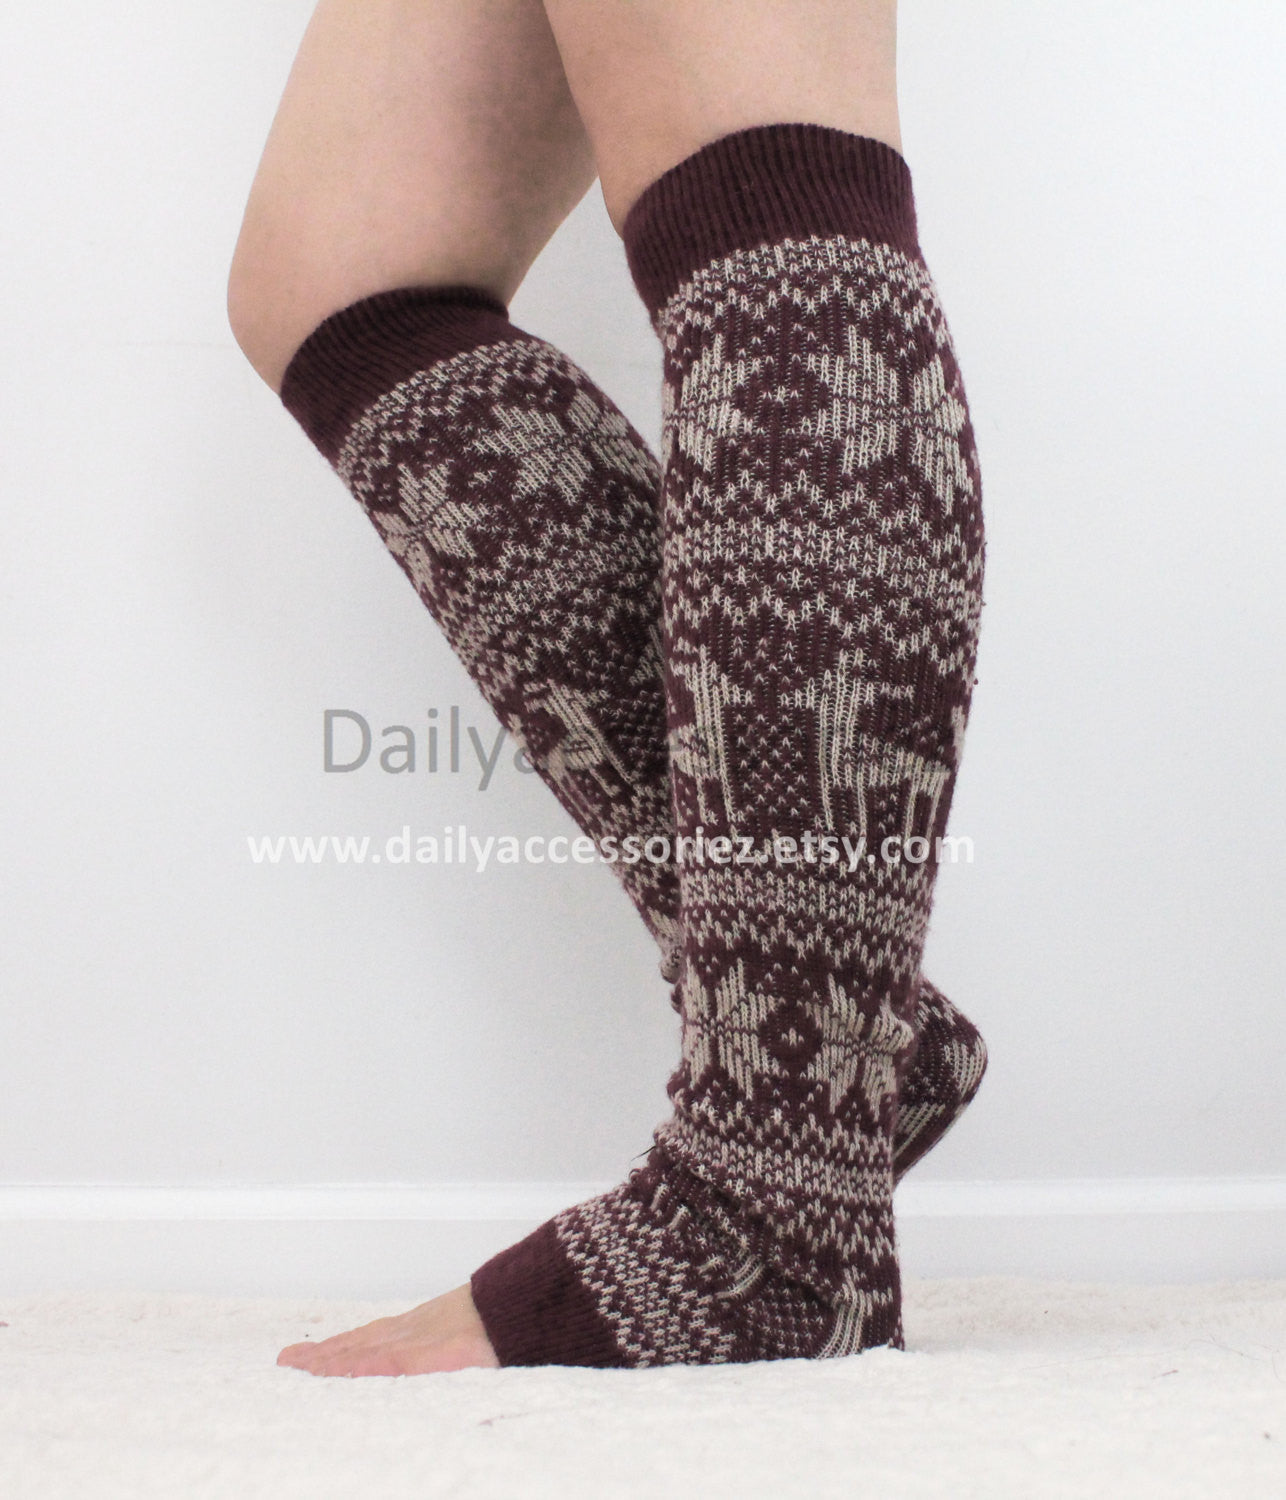 Christmas Reindeer Knit Leg Warmers - Bean Concept - Etsy